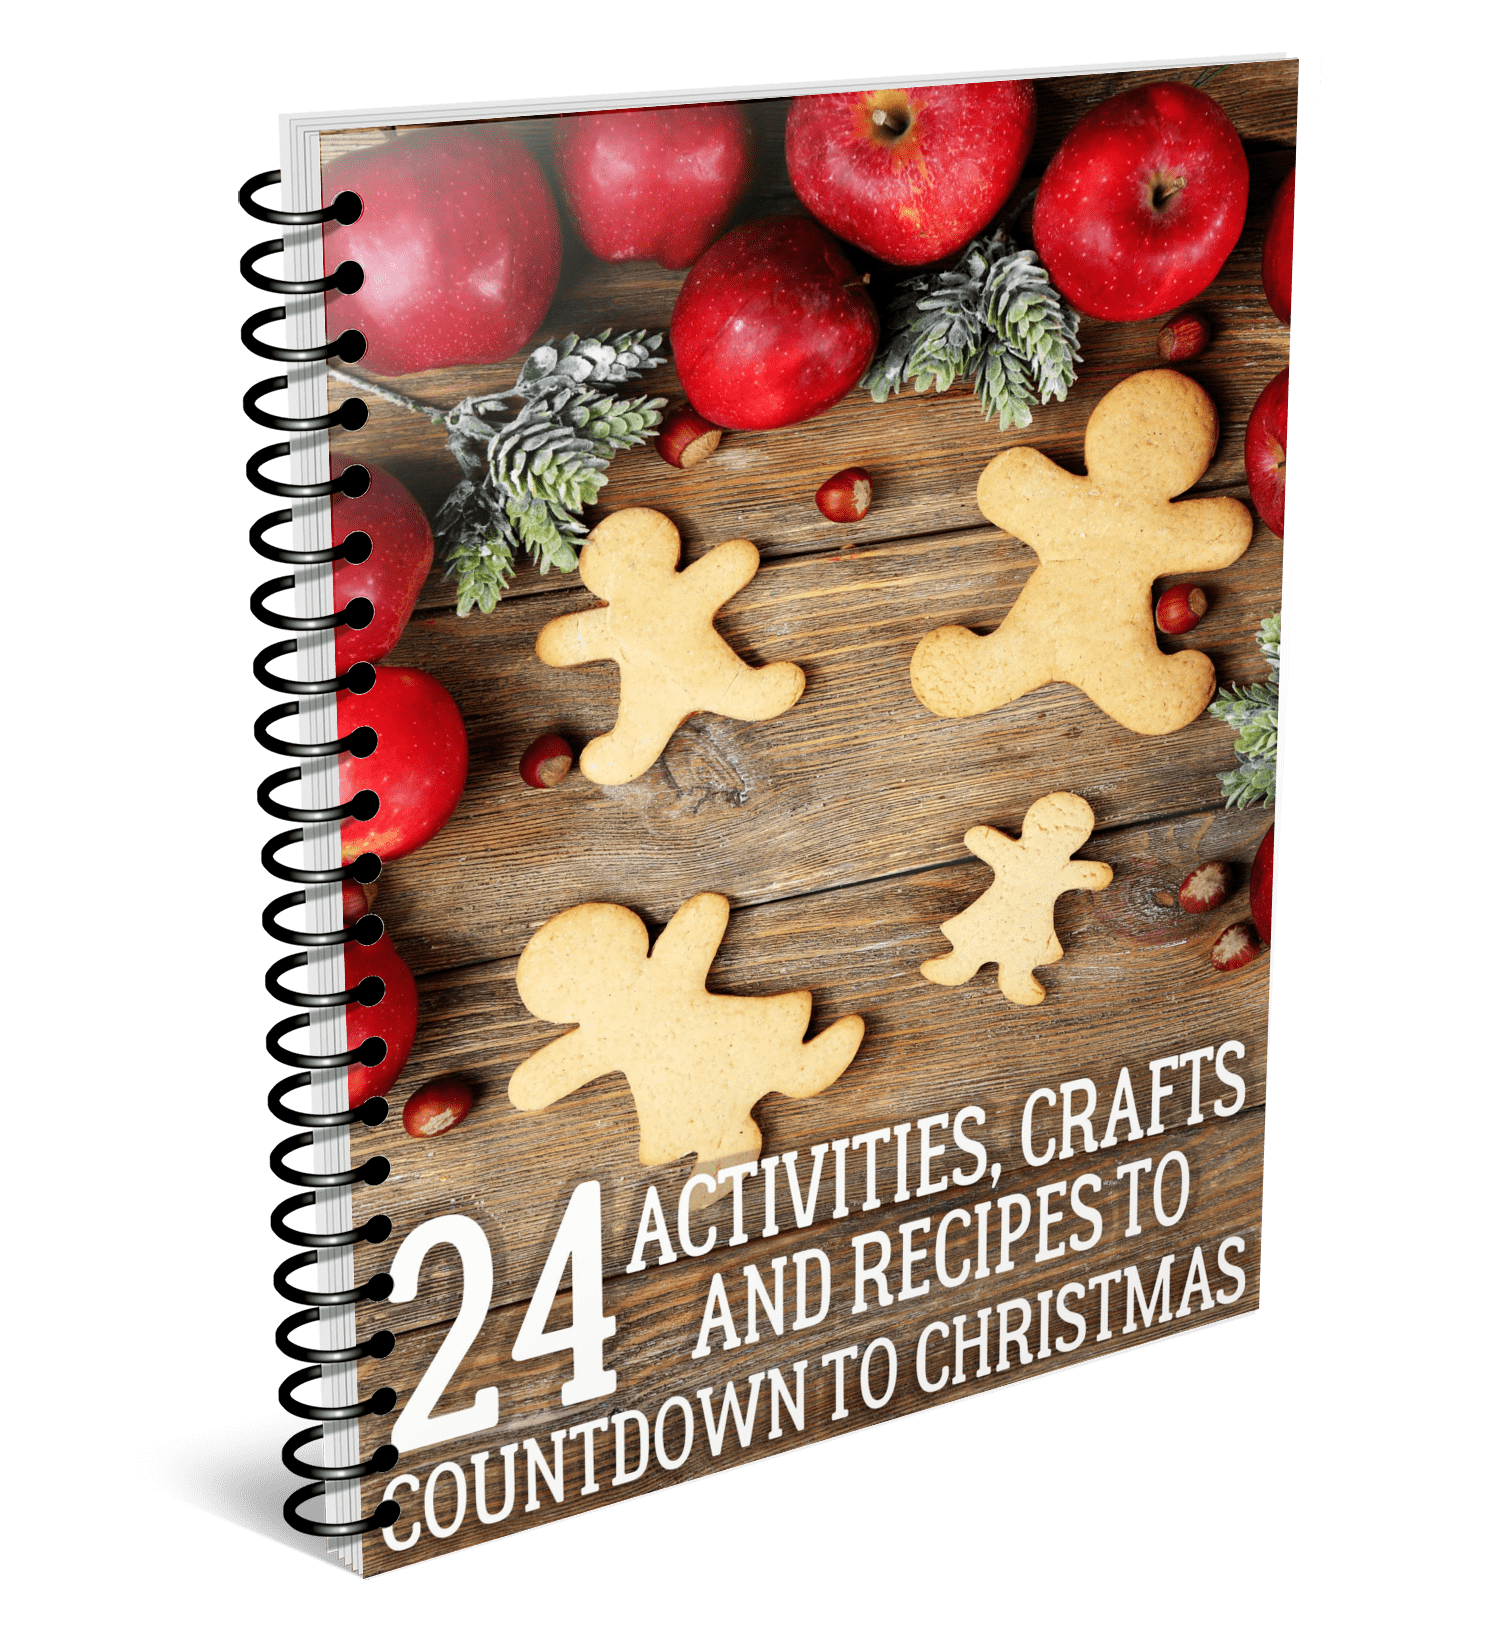 Countdown to Christmas with these 24 family friendly activities to spend quality time together even when time is short and you are pulled in 100 different directions